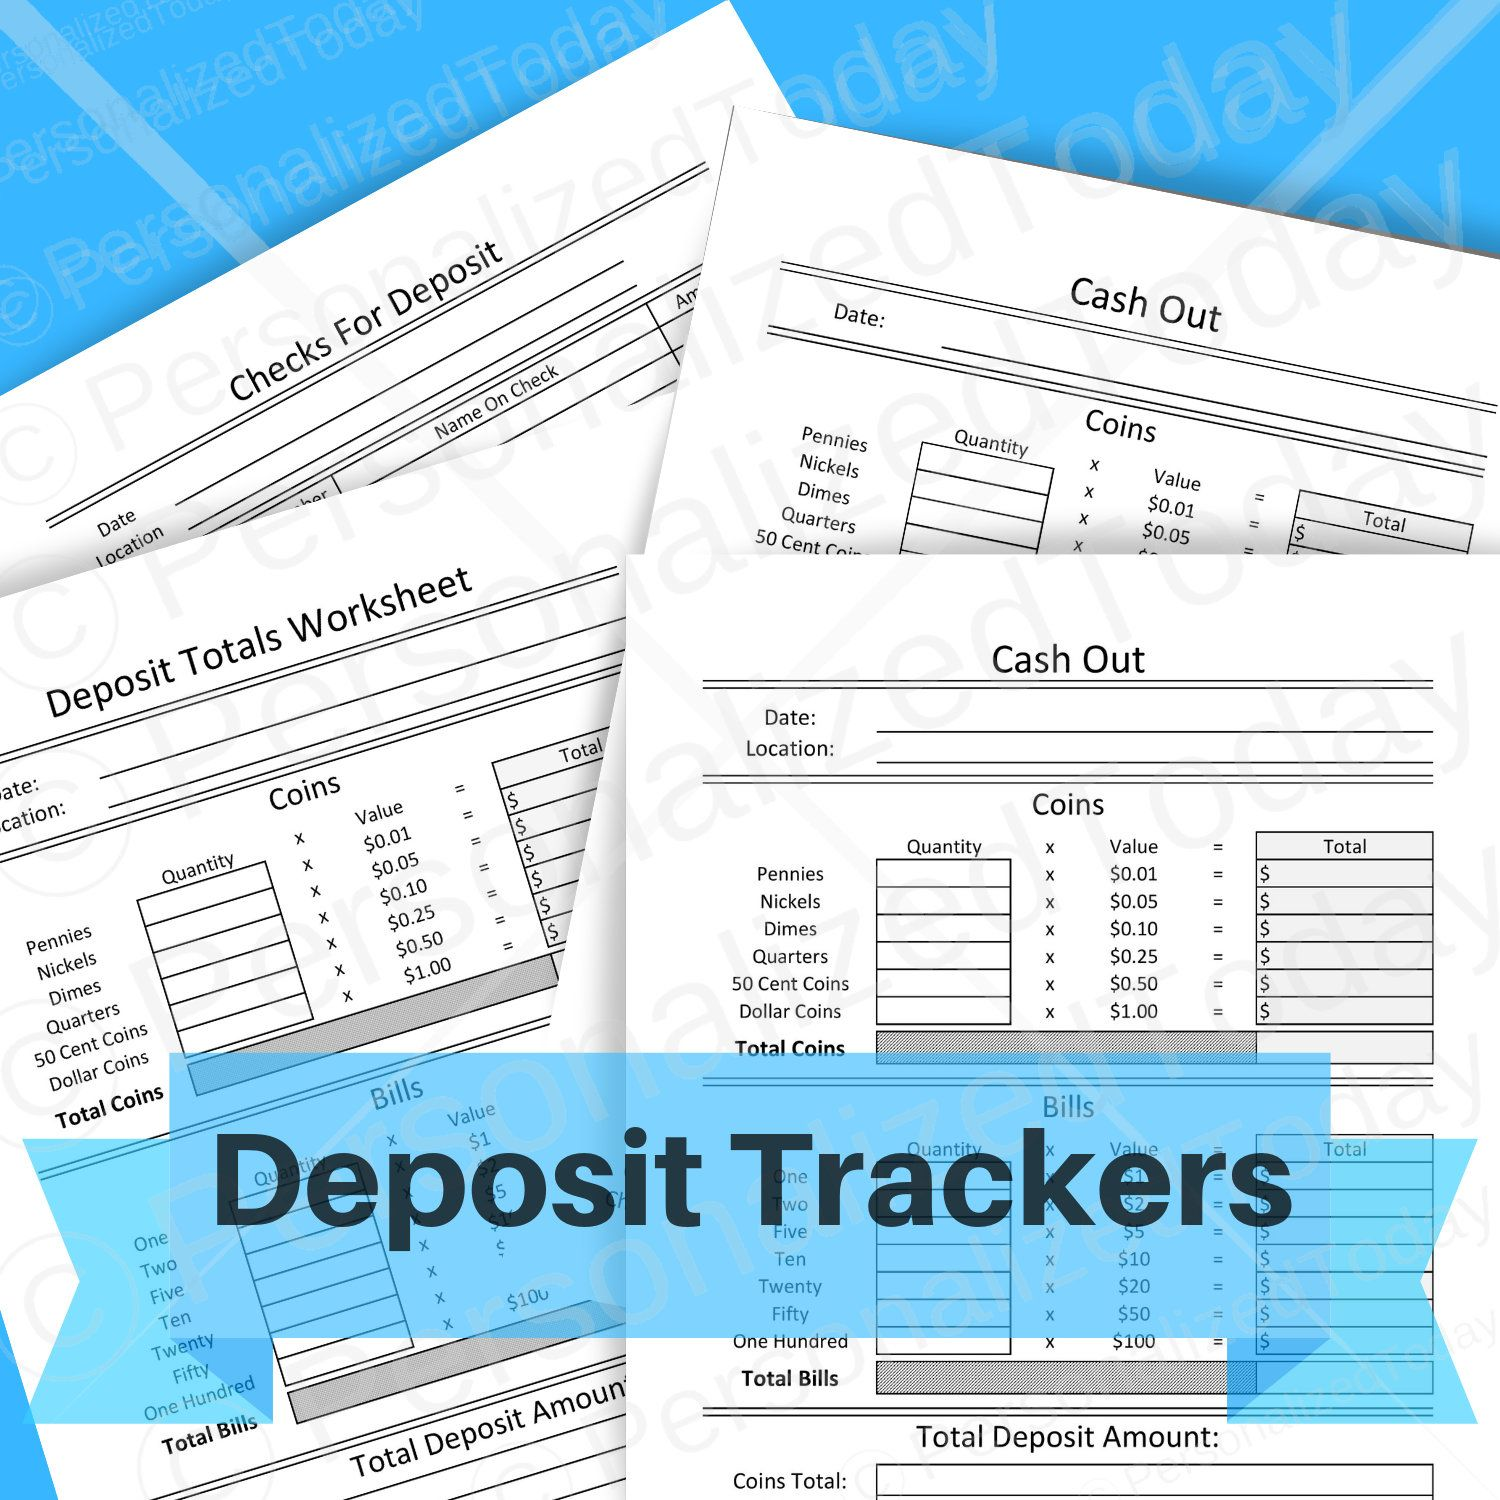 Cash And Checks Deposit Tracking Sheet For Coin Change Dollar Bills Currency And Checks Business Bookkeeping Form Print Cash Flow Statement Deposit Bookkeeping